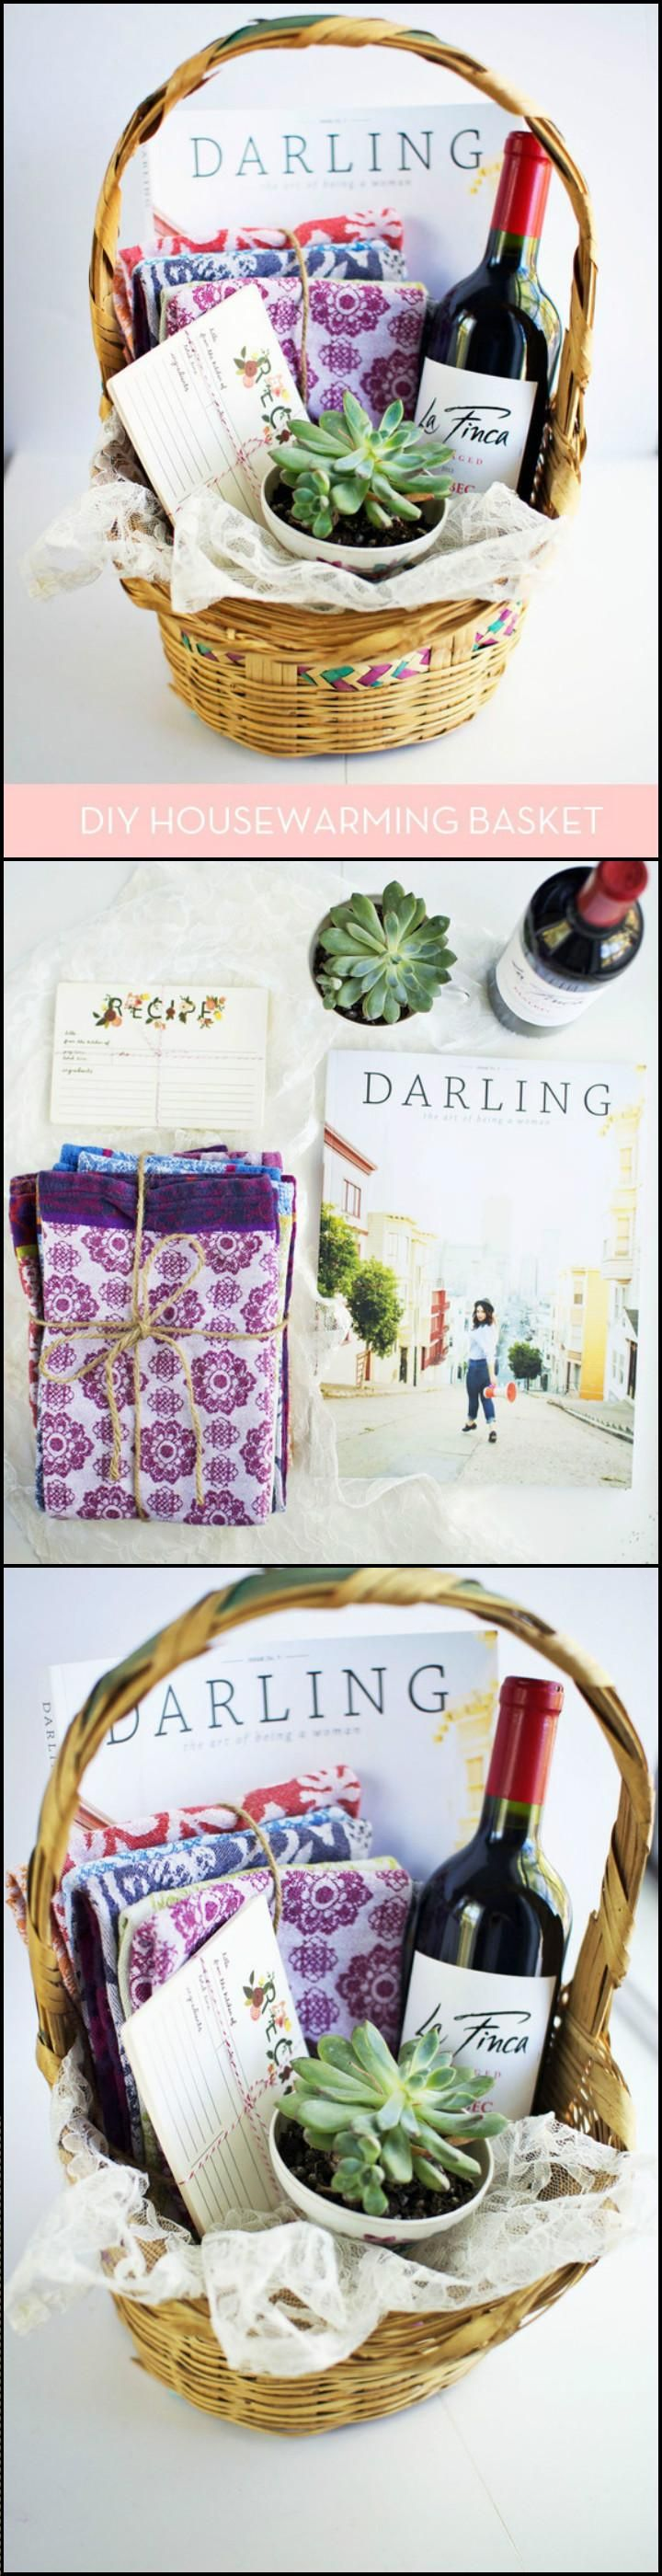 70+ Inexpensive DIY Gift Basket Ideas - DIY Gifts - Page 14 of 14 - DIY & Crafts